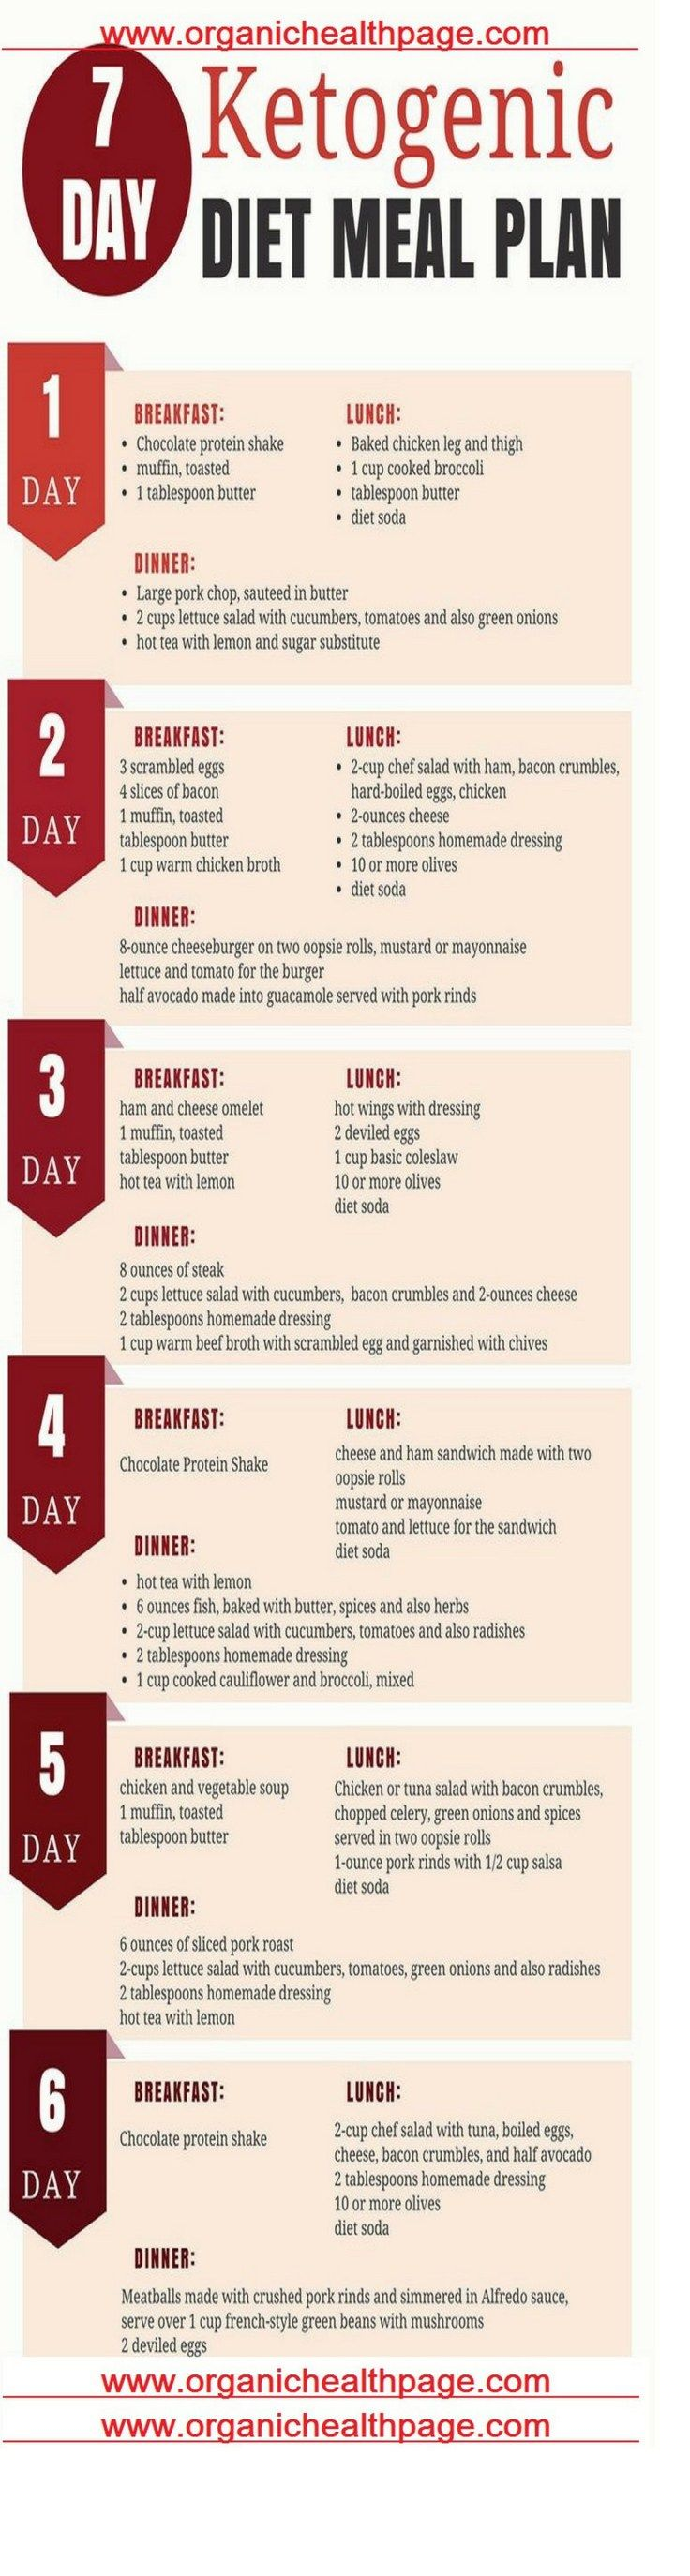 ONE-WEEK KETOGENIC DIET MEAL PLAN TO FIGHT OBESITY, DIABETES, EPILEPSY, HEART DISEASE, ALZHEIMER'S, CANCER, AND MORE! (scheduled via http://www.tailwindapp.com?utm_source=pinterest&utm_medium=twpin&utm_content=post188468695&utm_campaign=scheduler_attribution)